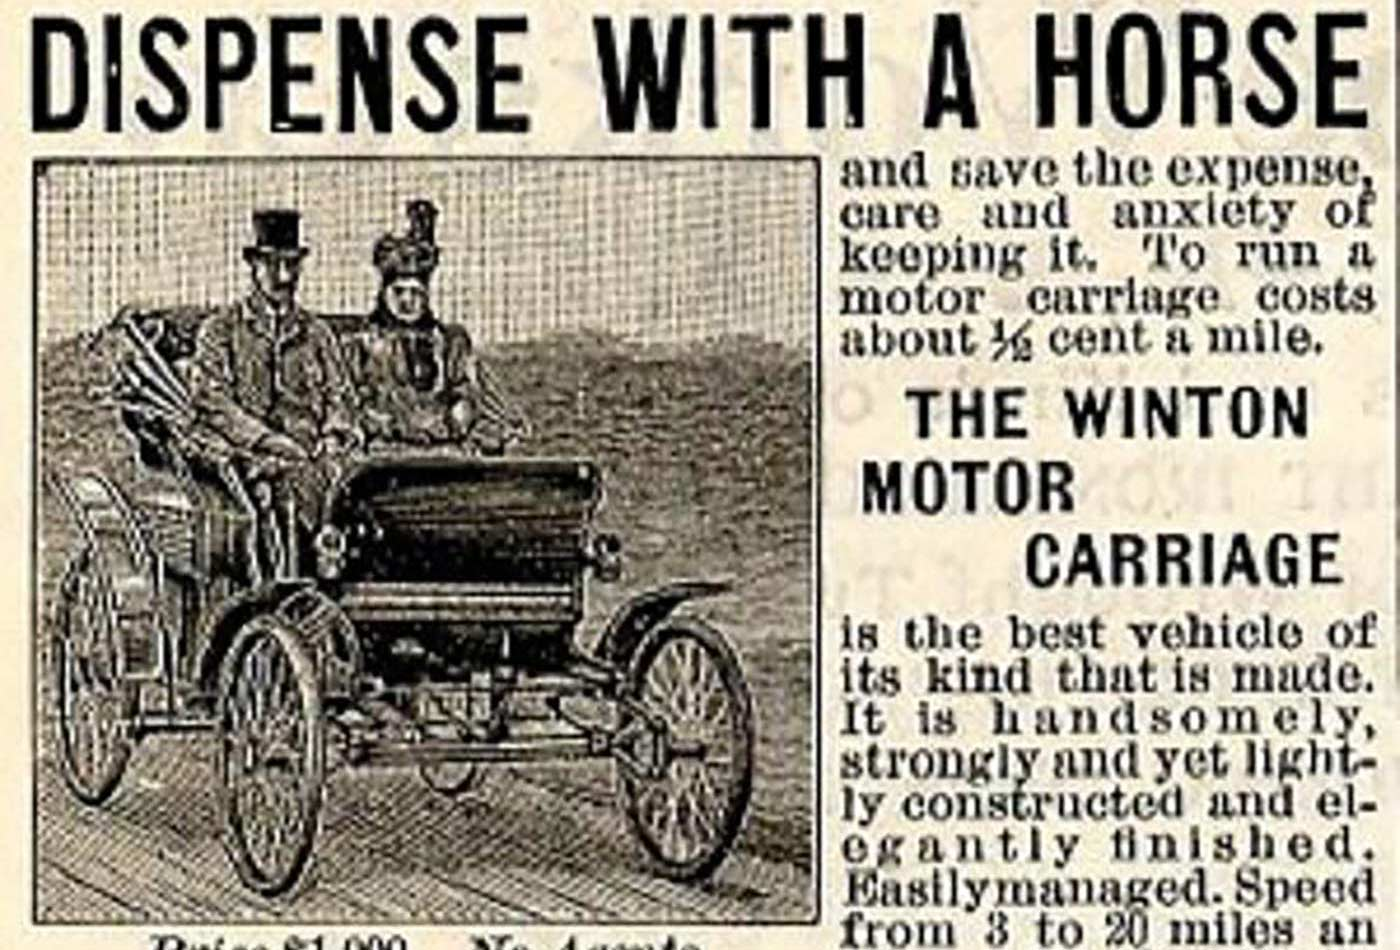 WintonMotor Carriage Company: The first automobile advertisement, Scientific American, February/March 1898.